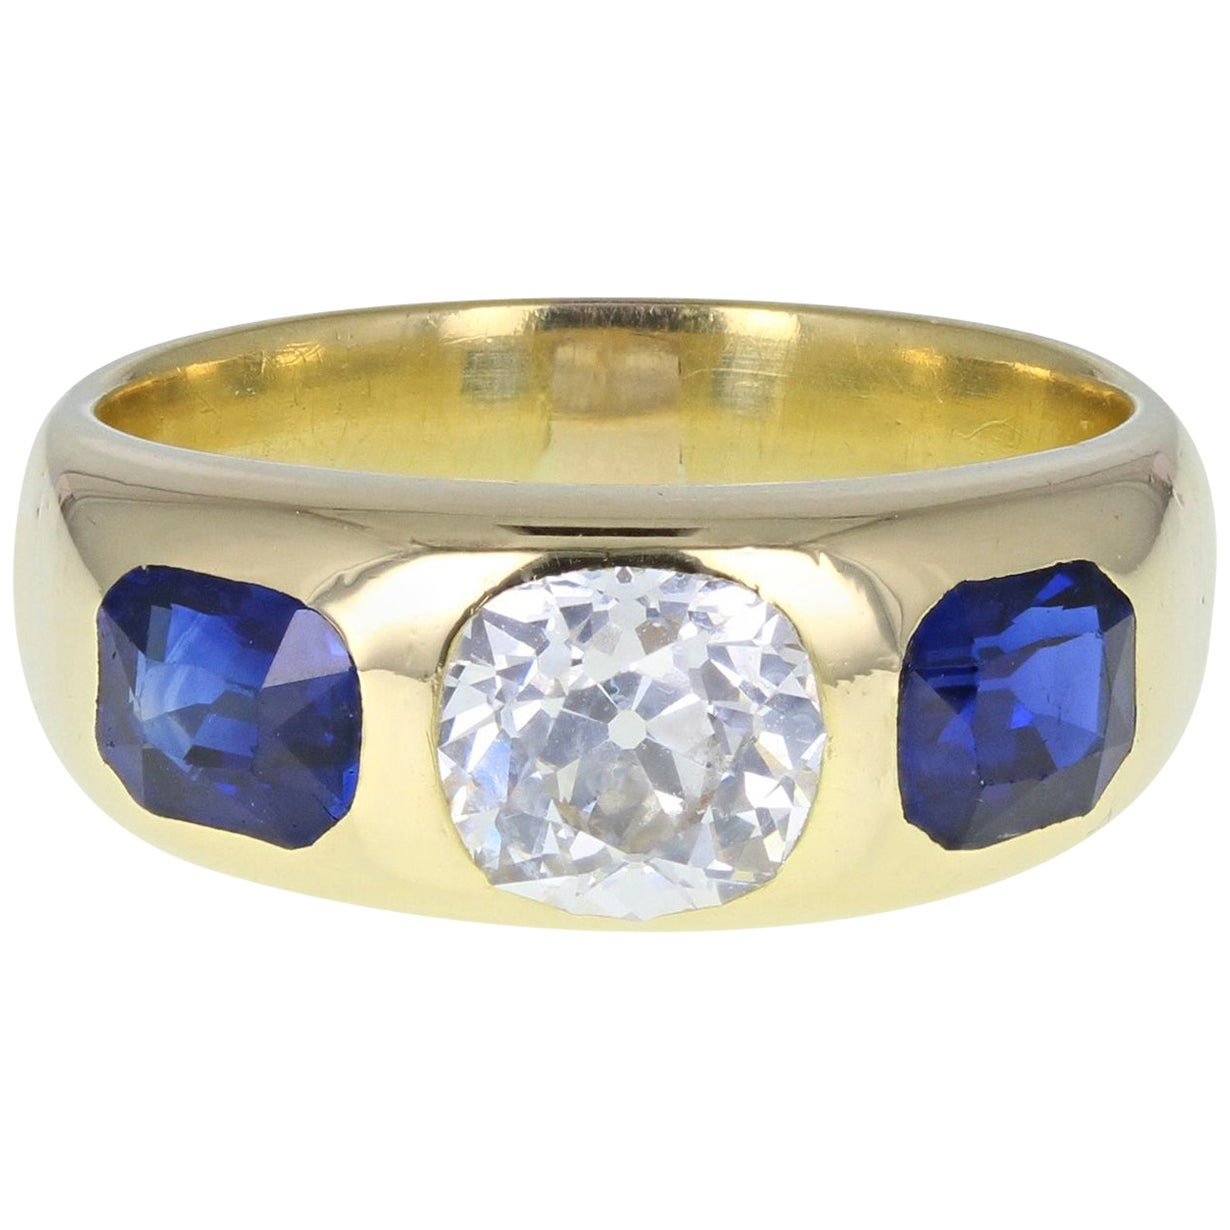 18 Carat Gold Old Cut Diamond Blue Sapphire Three-Stone Heavy Band Ring